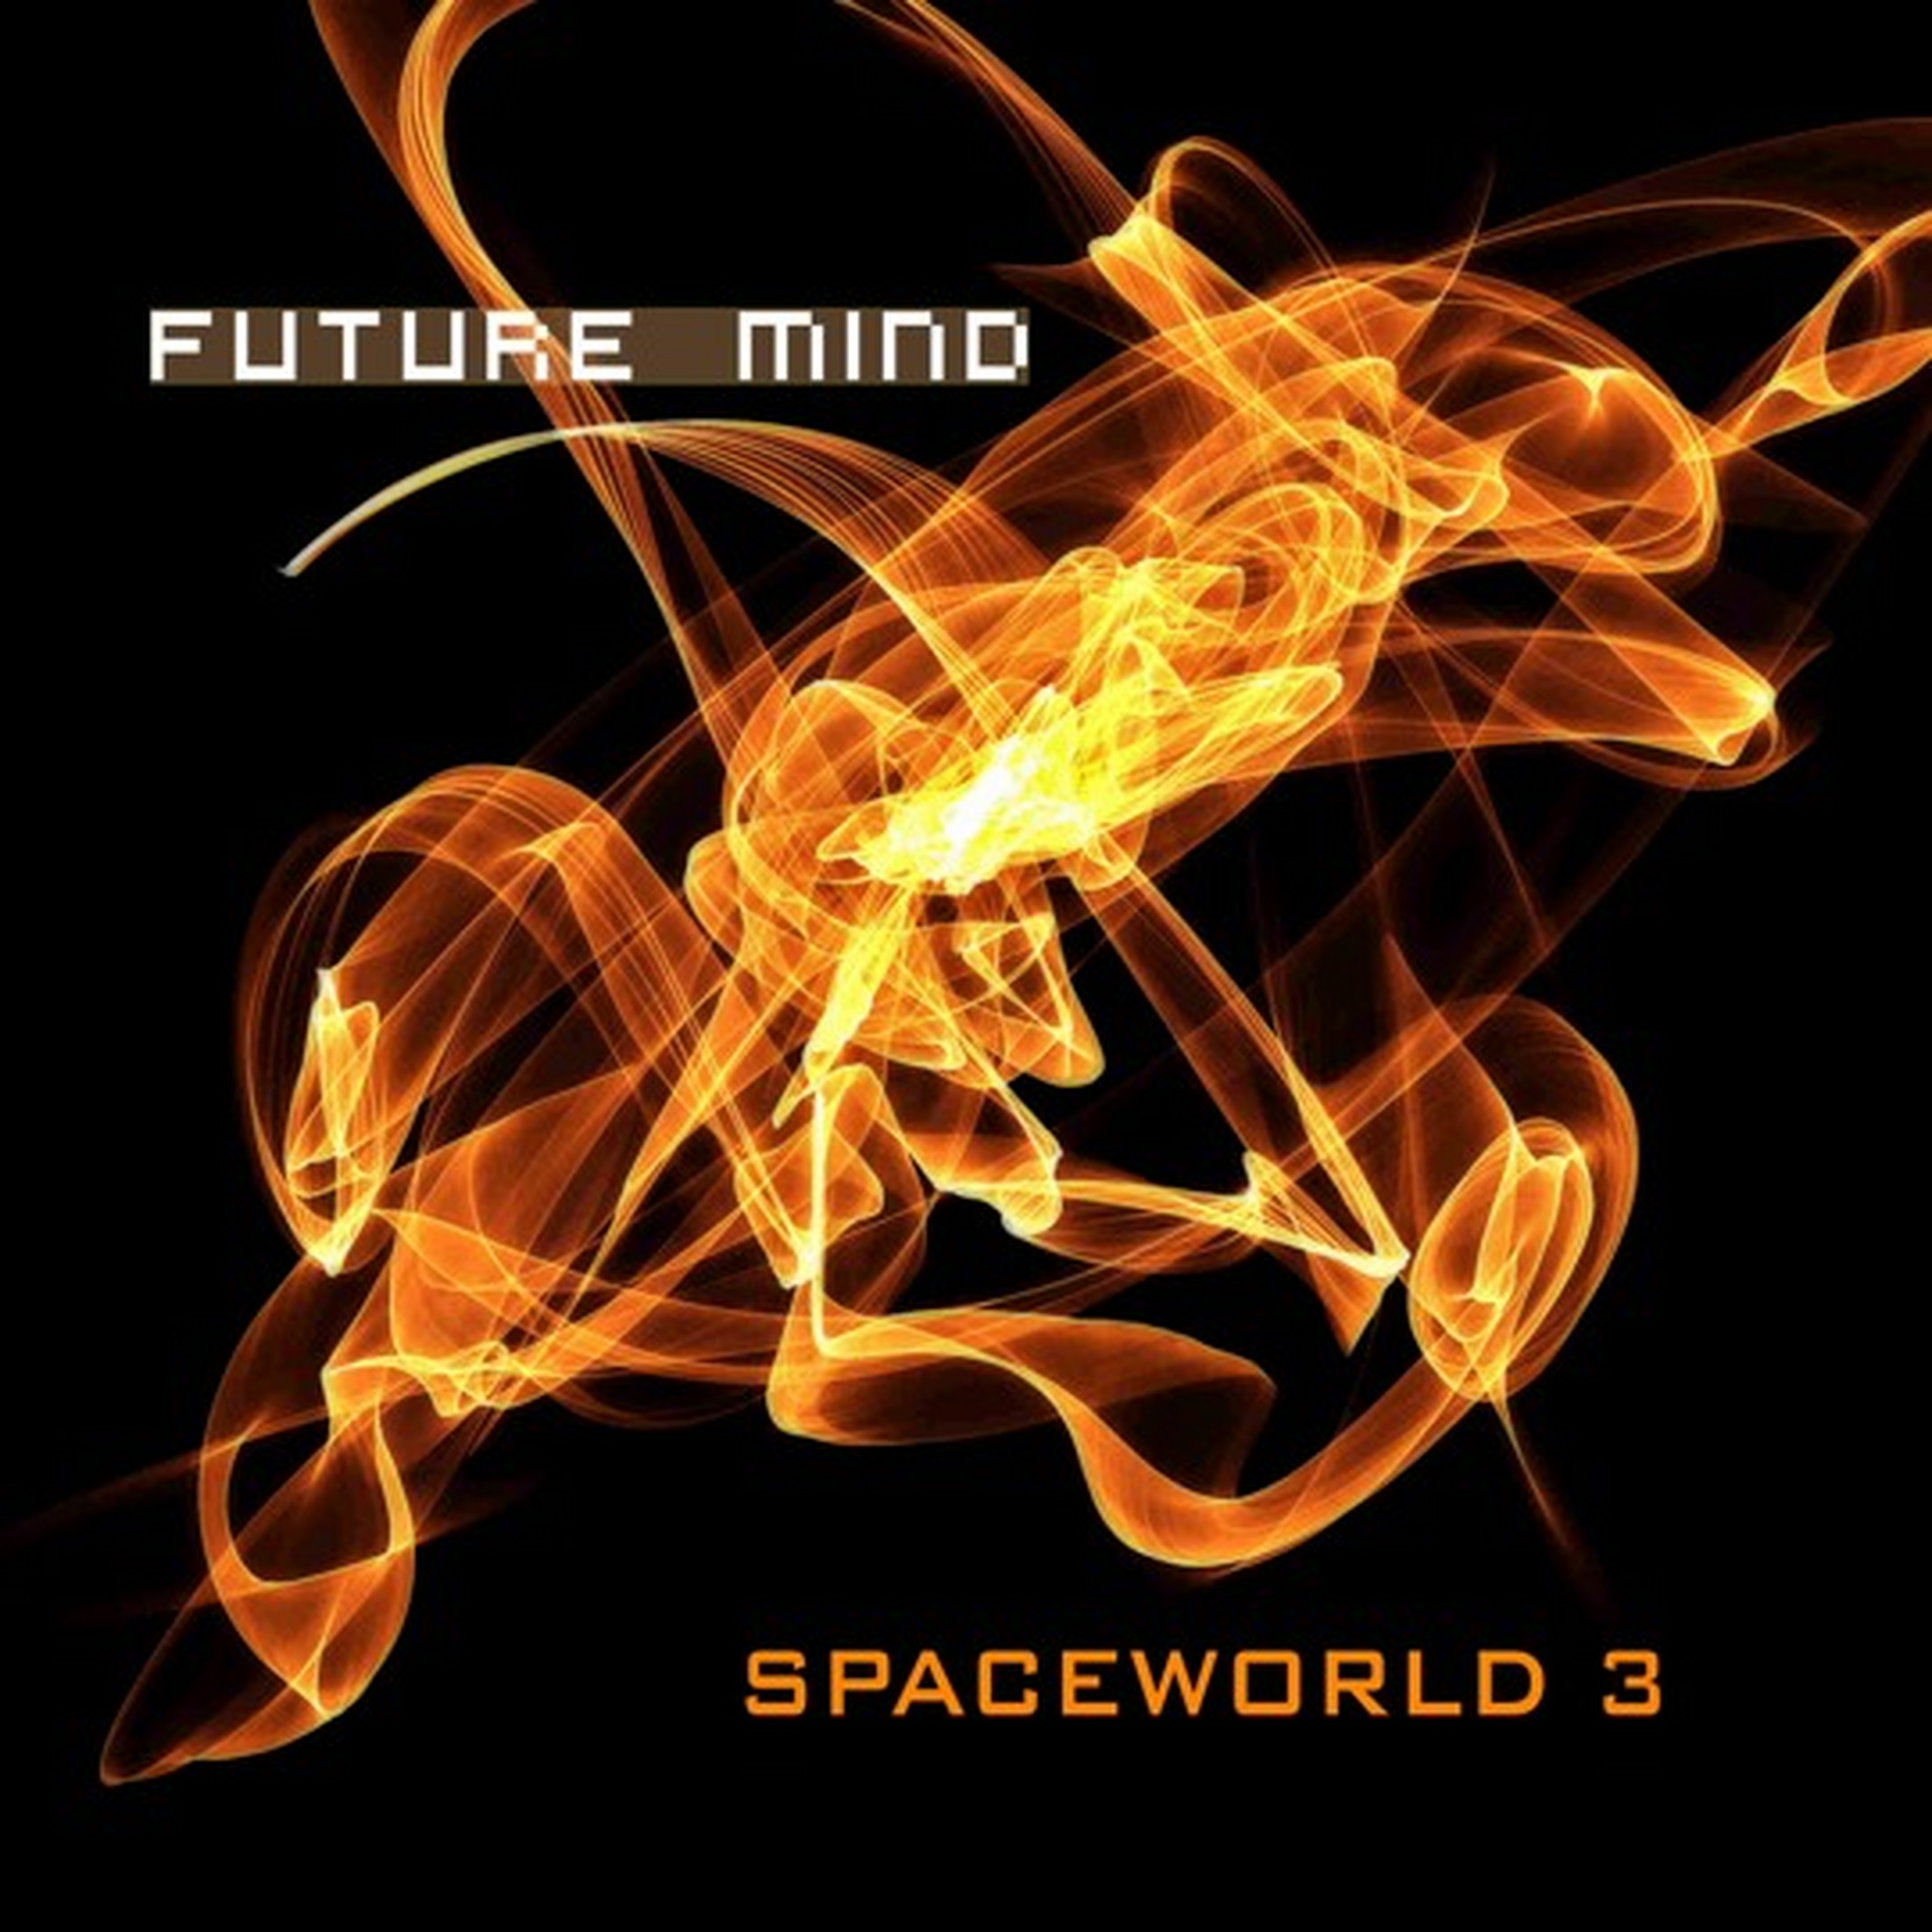 Future Mind Spaceworld 3